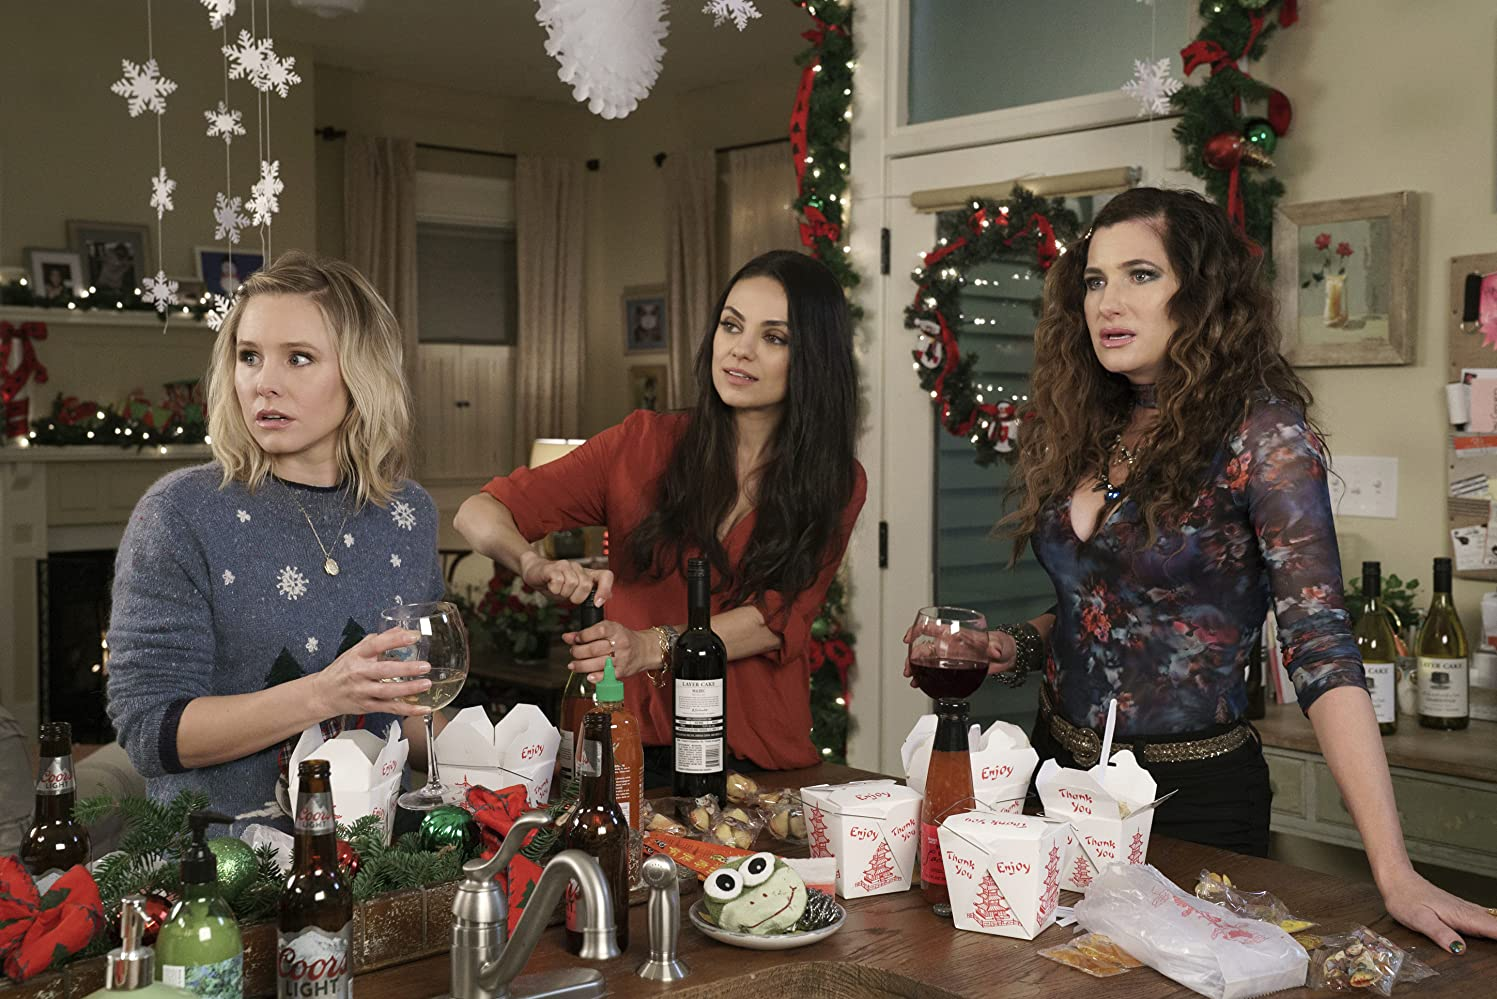 Mila Kunis, Kristen Bell, and Kathryn Hahn in A Bad Moms Christmas (2017)